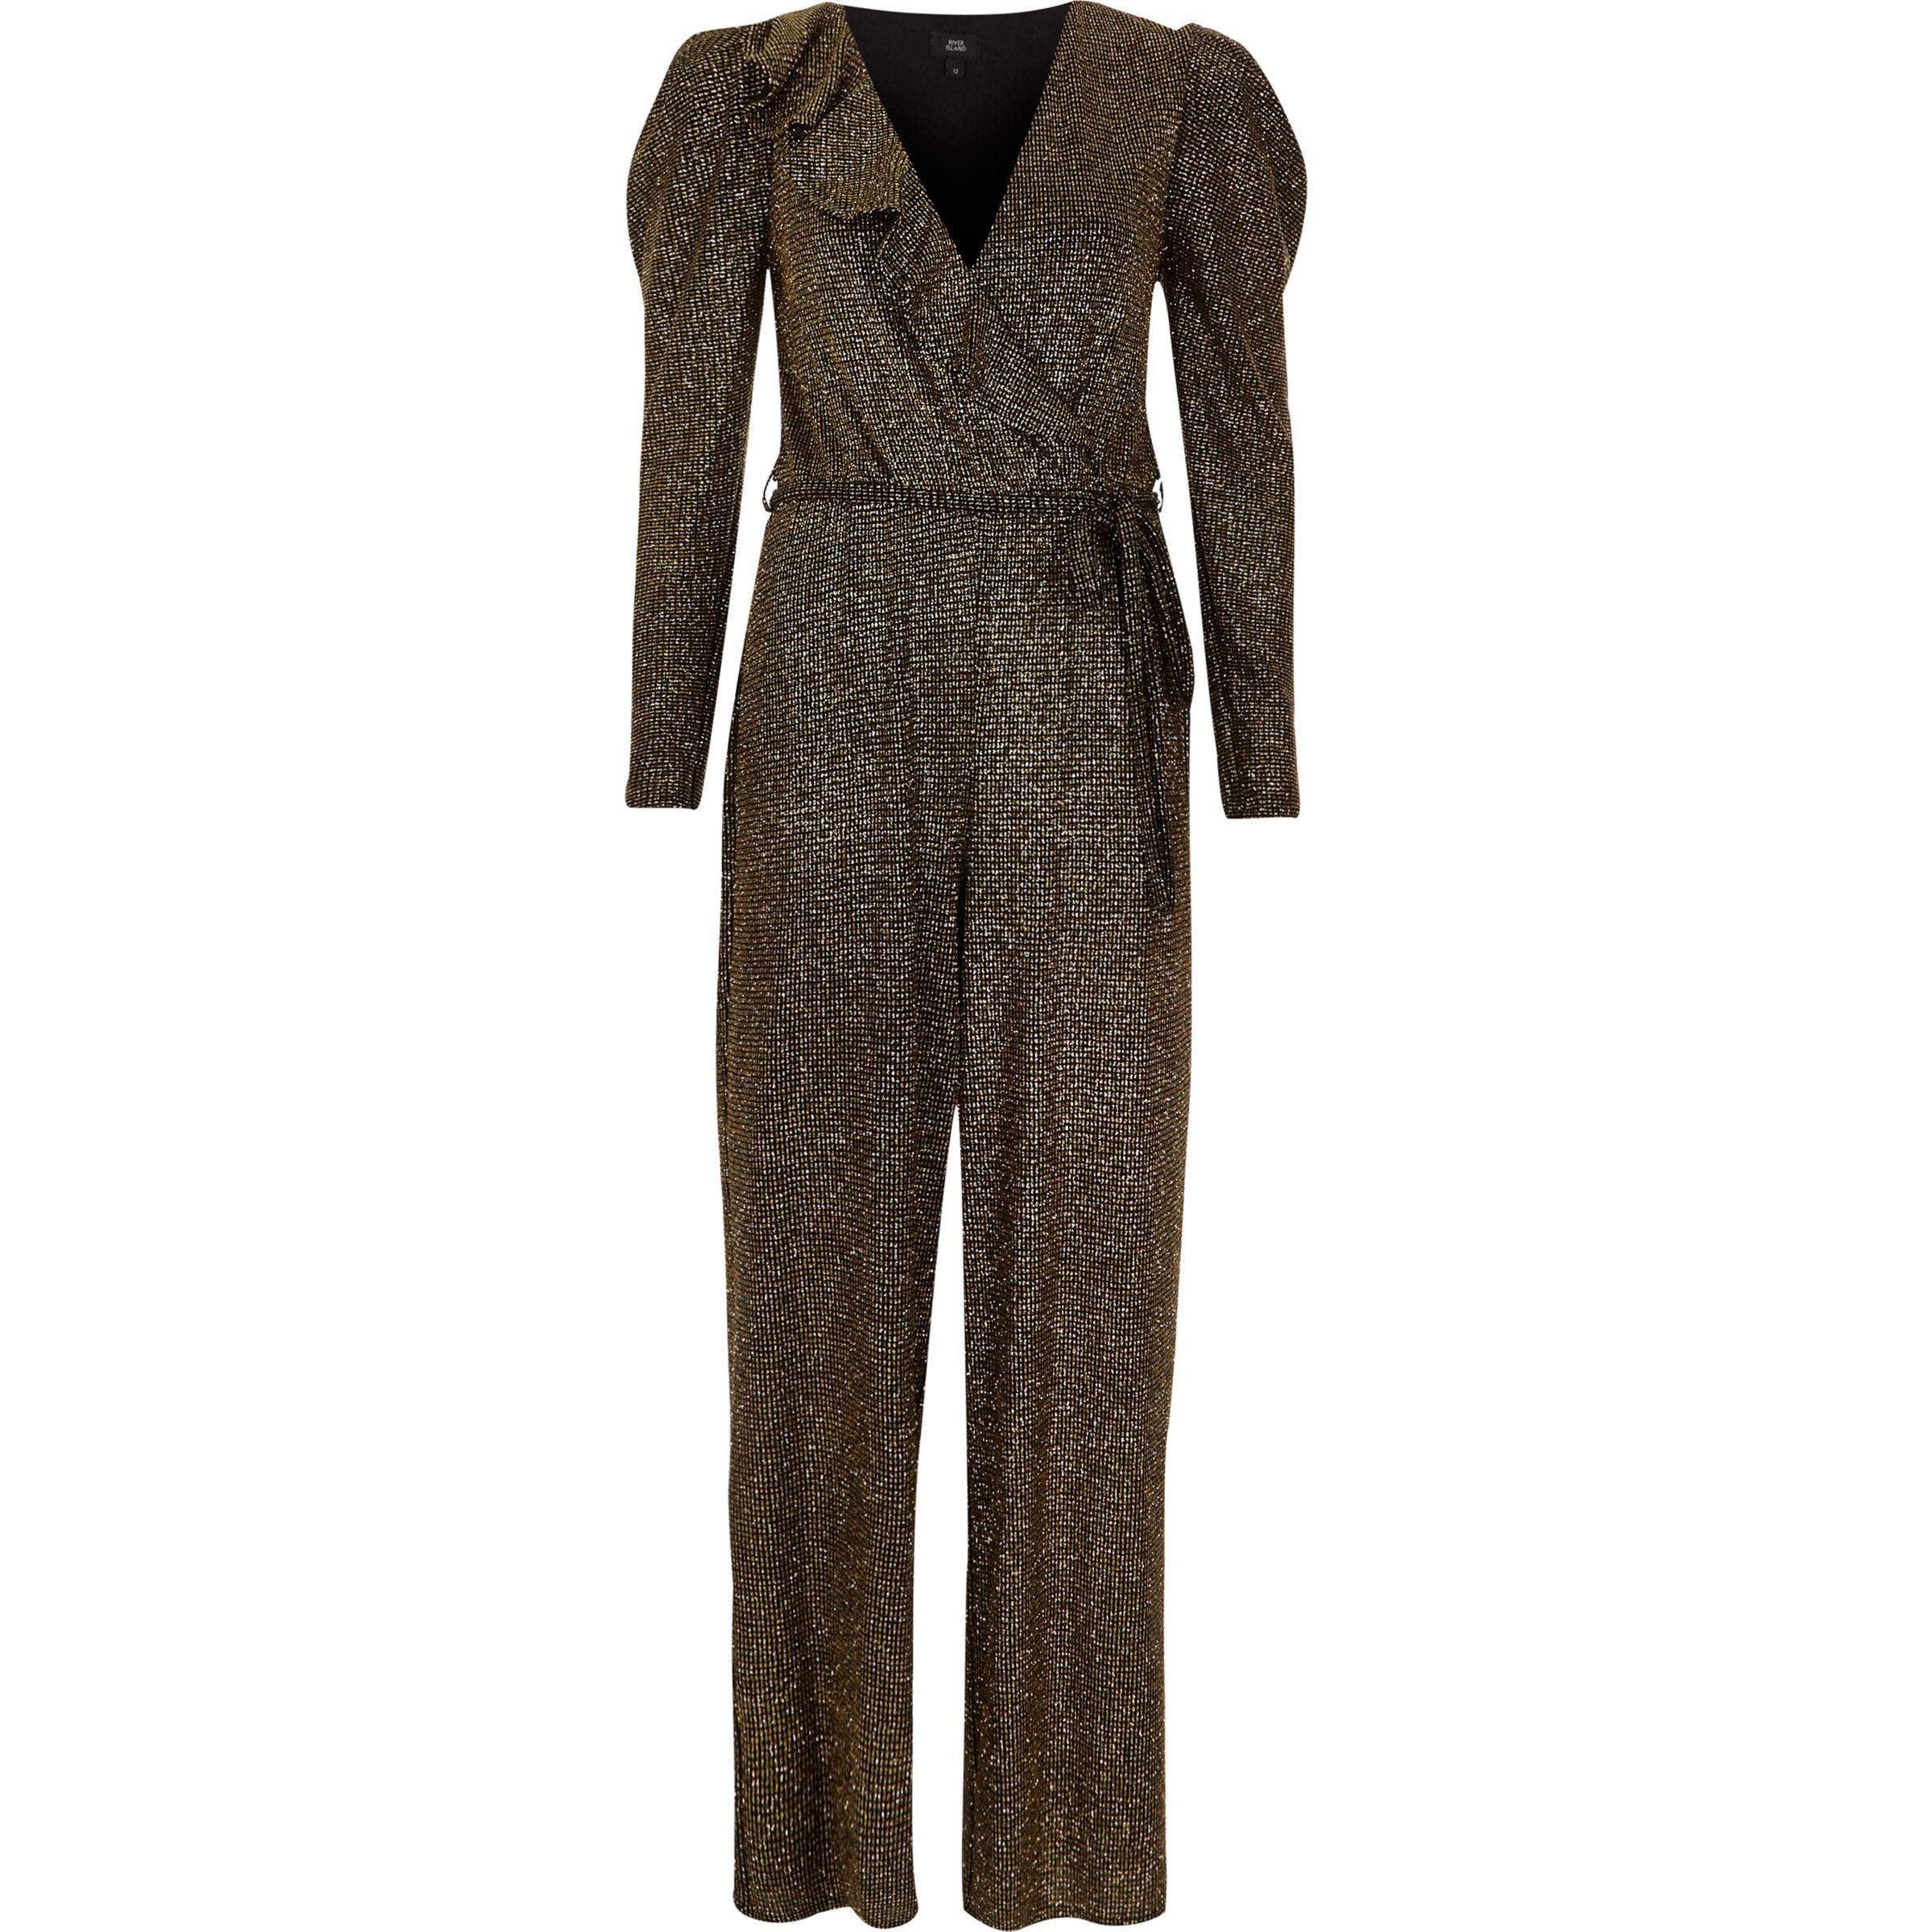 c0bde4dfcc1 River Island Gold Metallic Glitter Frill Wrap Jumpsuit in Black - Lyst